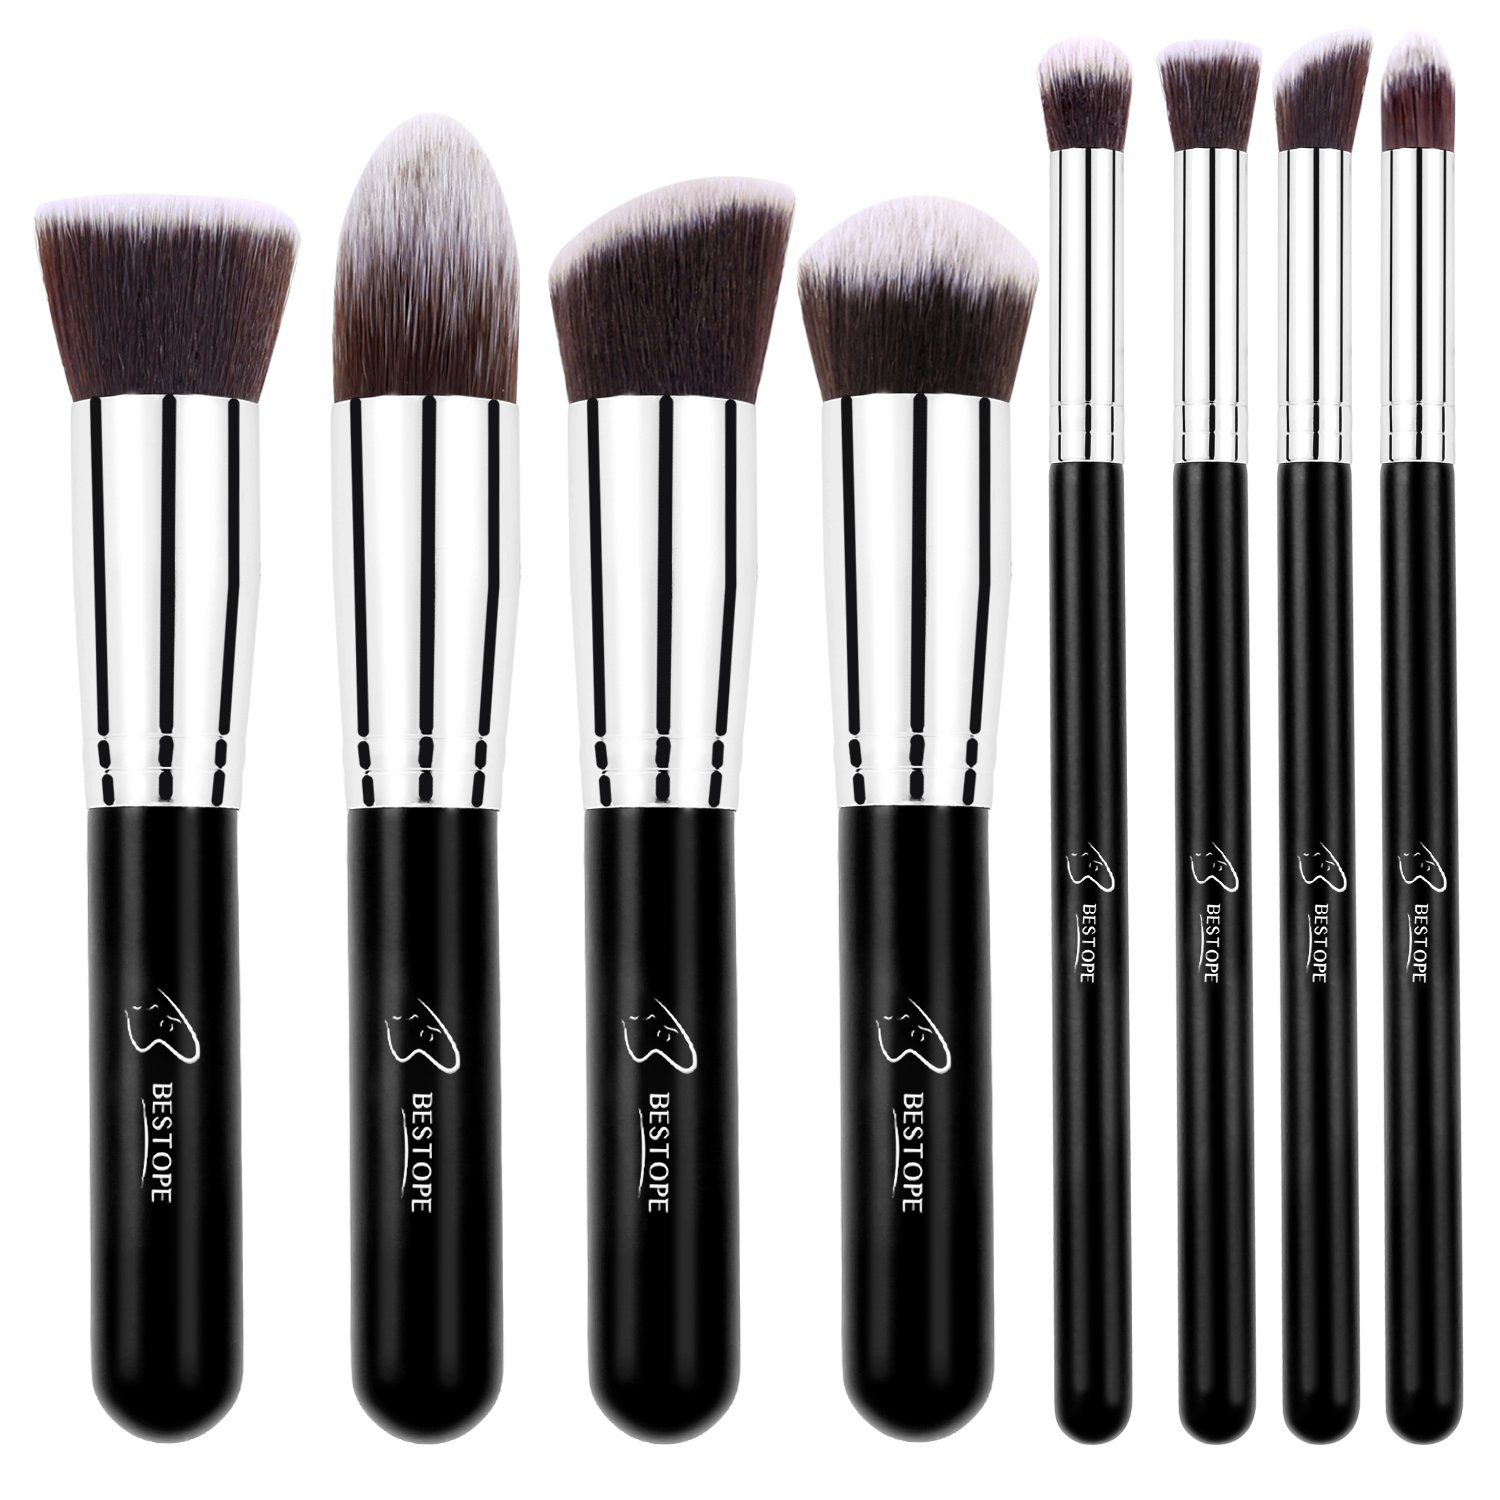 4) BESTOPE 8-piece Makeup Brushes